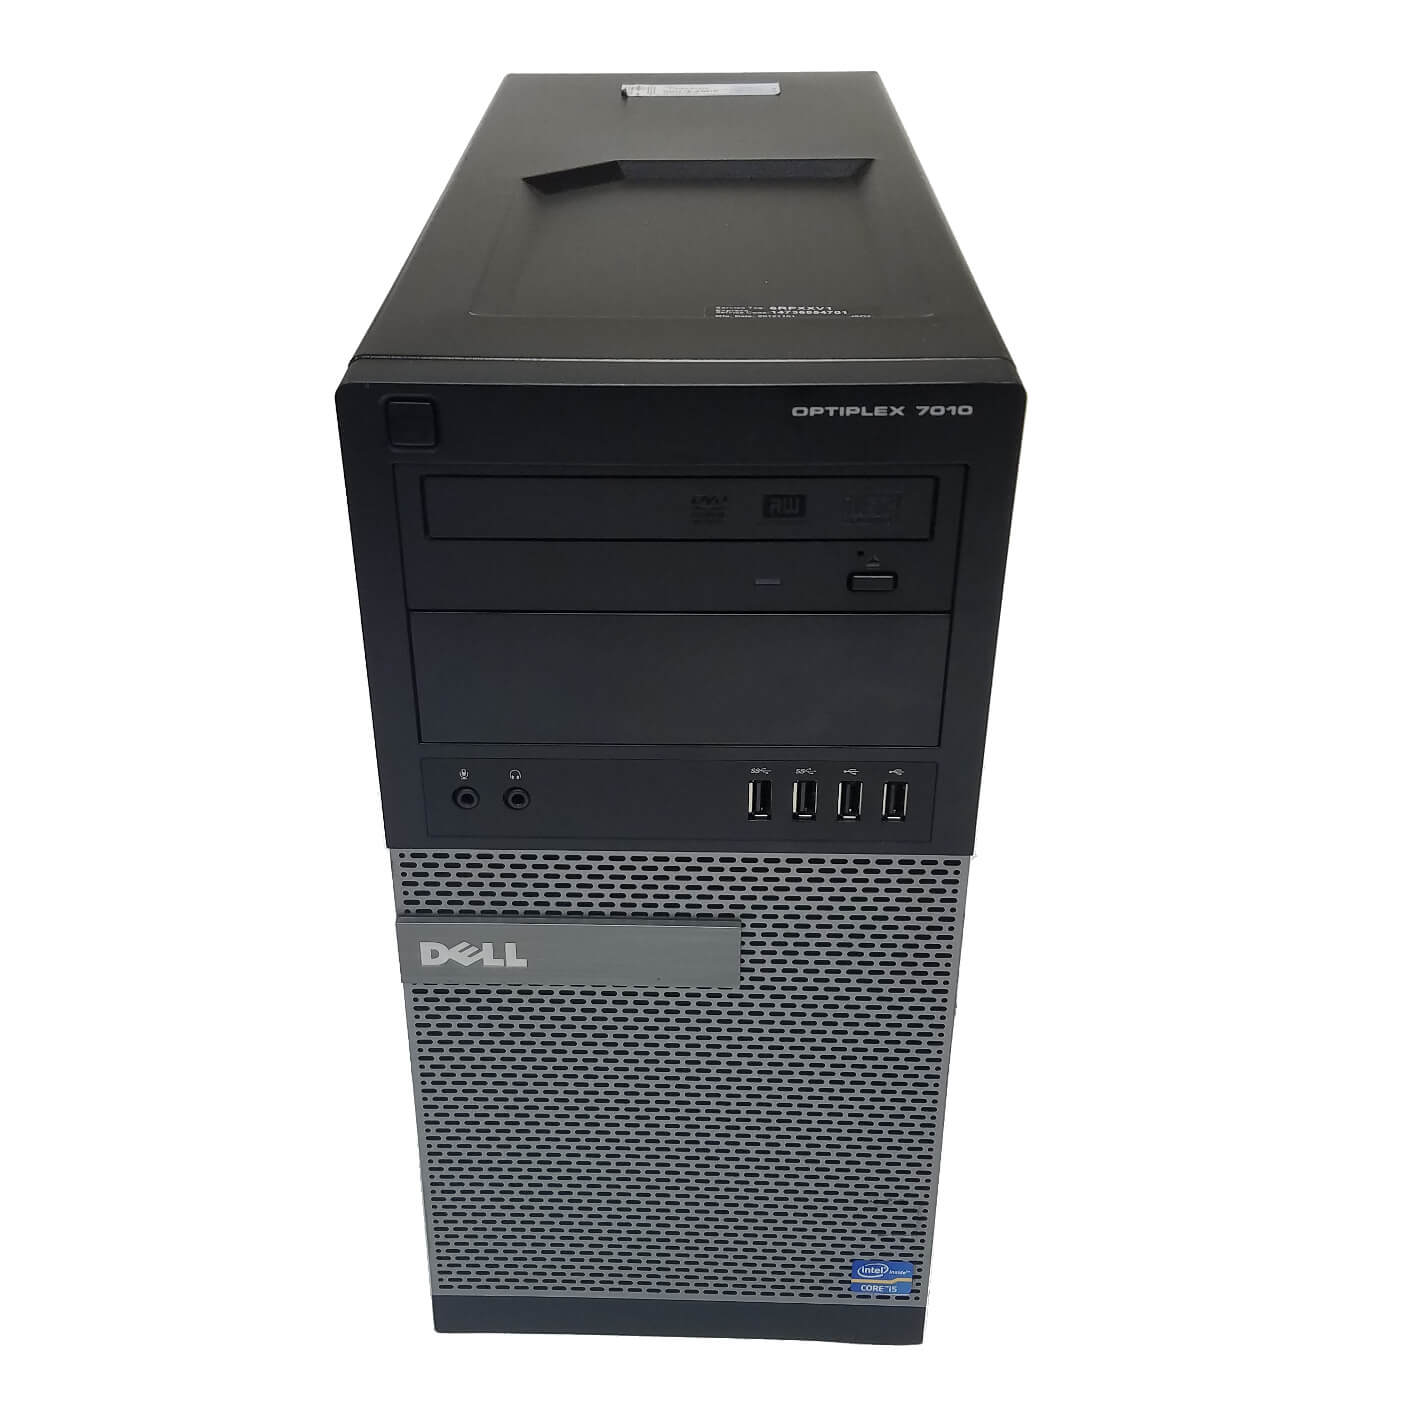 DELL 7010 TOWER I5-3470 3.2 / 8192 MB DDR3 / 256 GB SSD / DVD-RW / WINDOWS 10 PRO